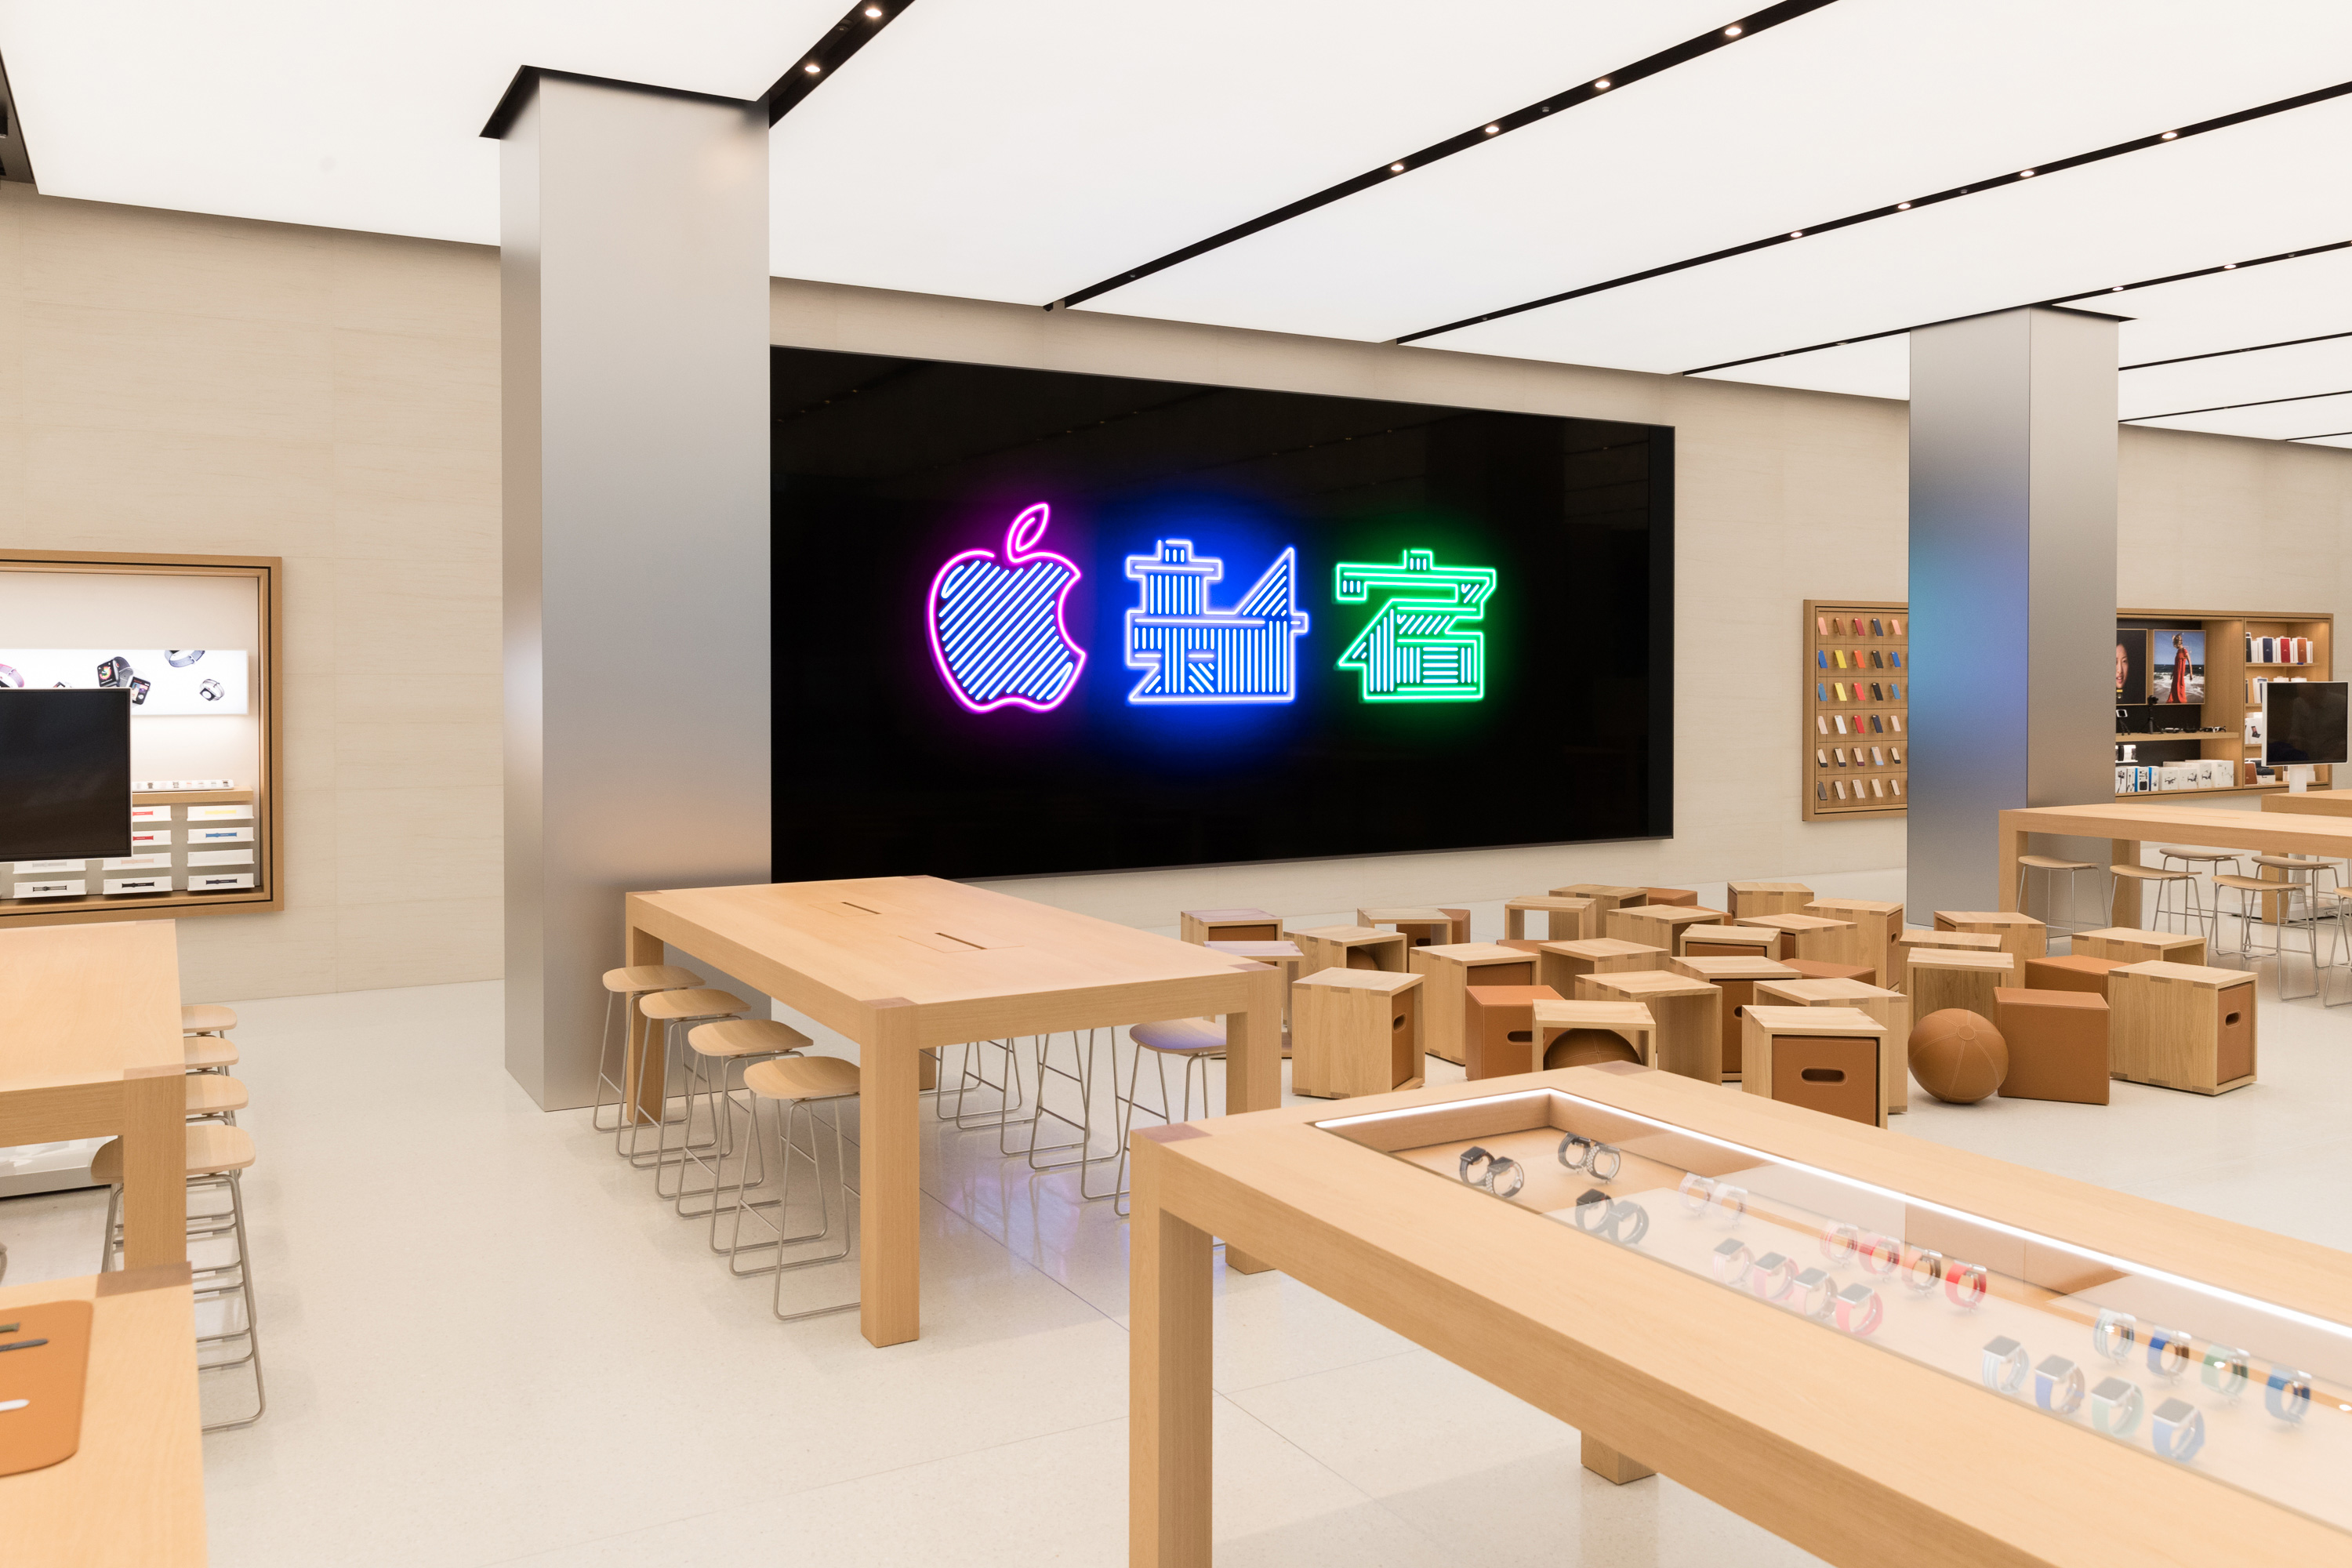 apple stores relying on in store contractors to catch up on iphone rh 9to5mac com apple store help desk number apple store sydney help desk